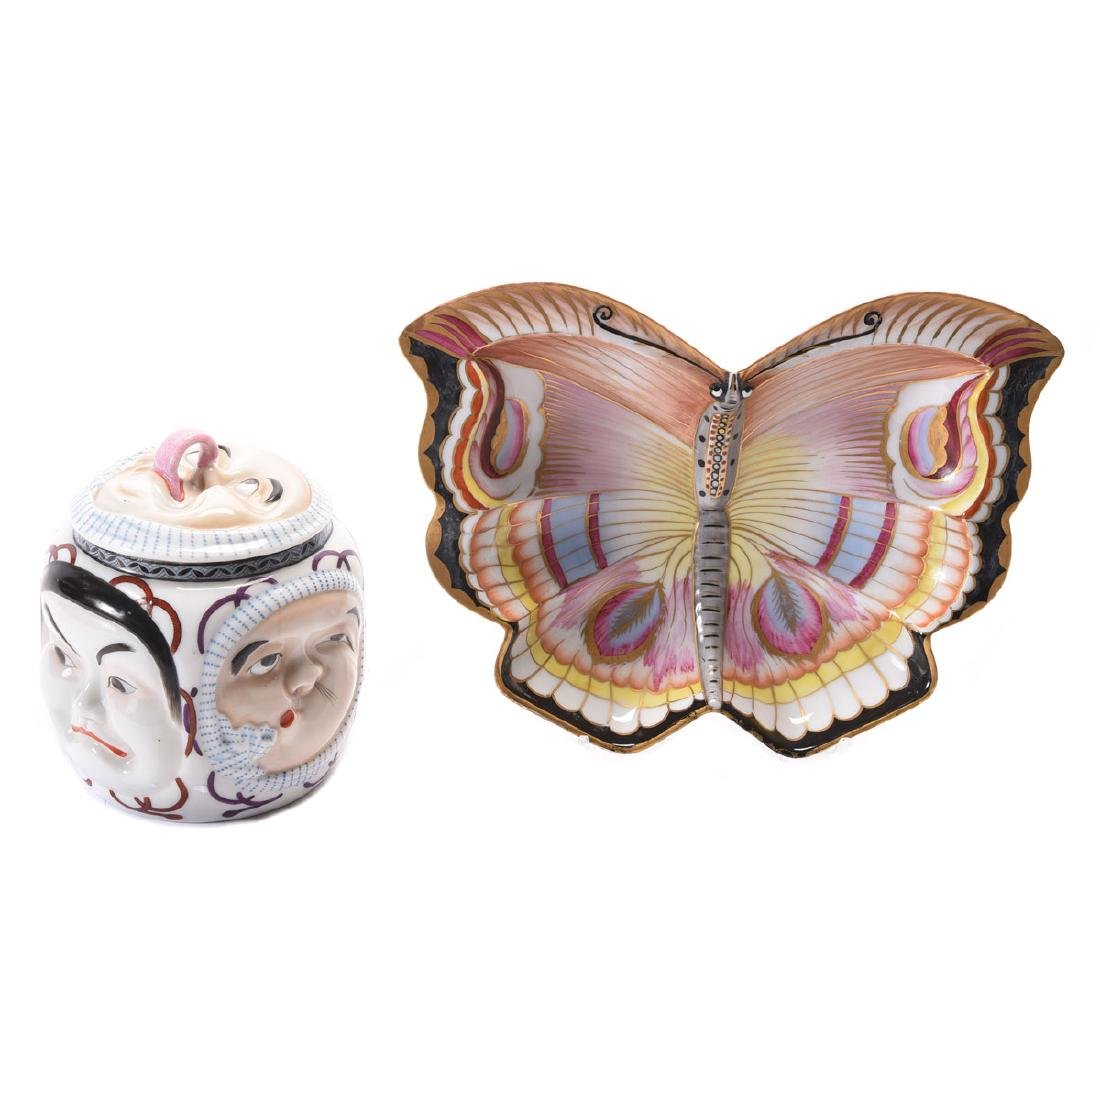 Continental Face Form Jar and Royal Vienna Butterfly